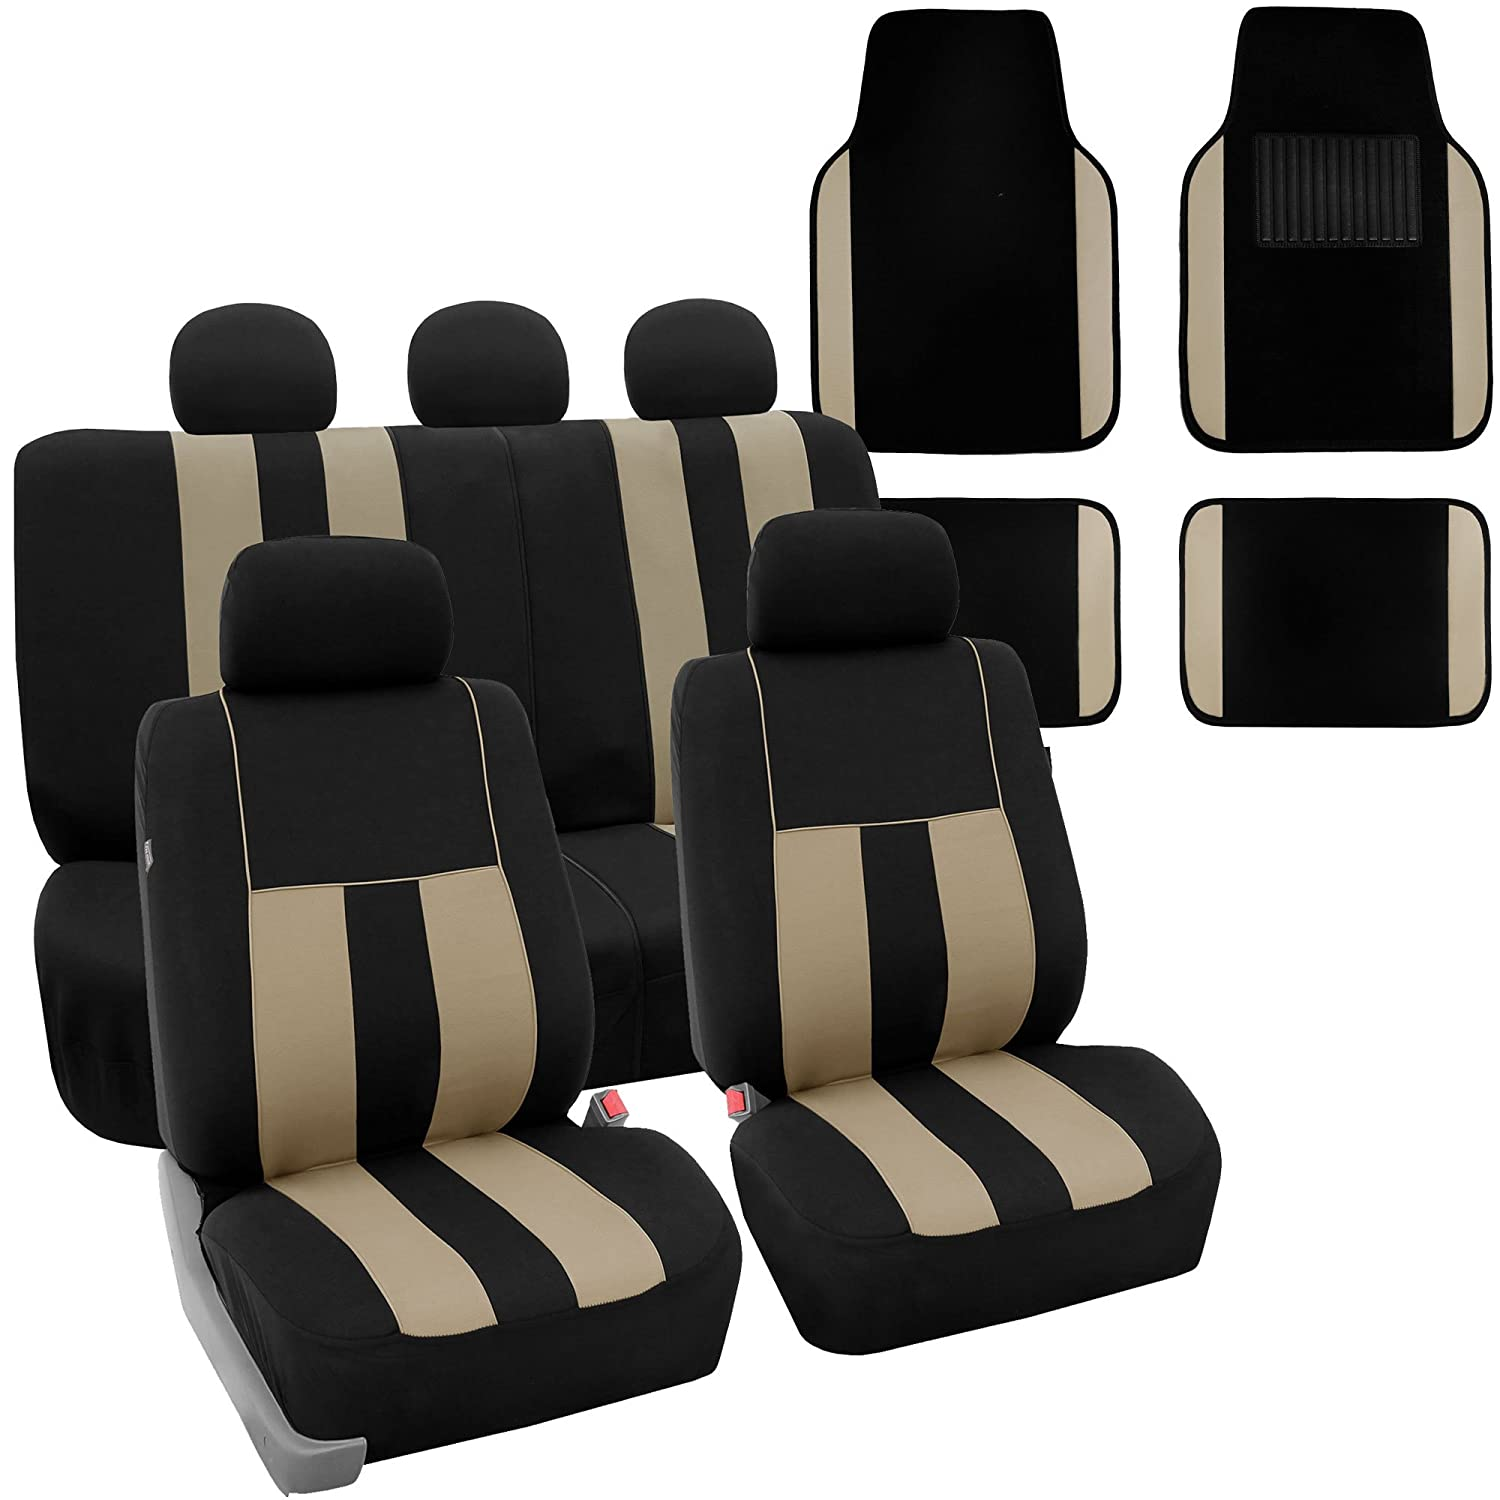 FH Group FH-FB036115 + F14407 Combo Set: Striking Striped Seat Covers with Premium Carpet Floor Mats Beige/Black Color- Fit Most Car, Truck, SUV, or Van